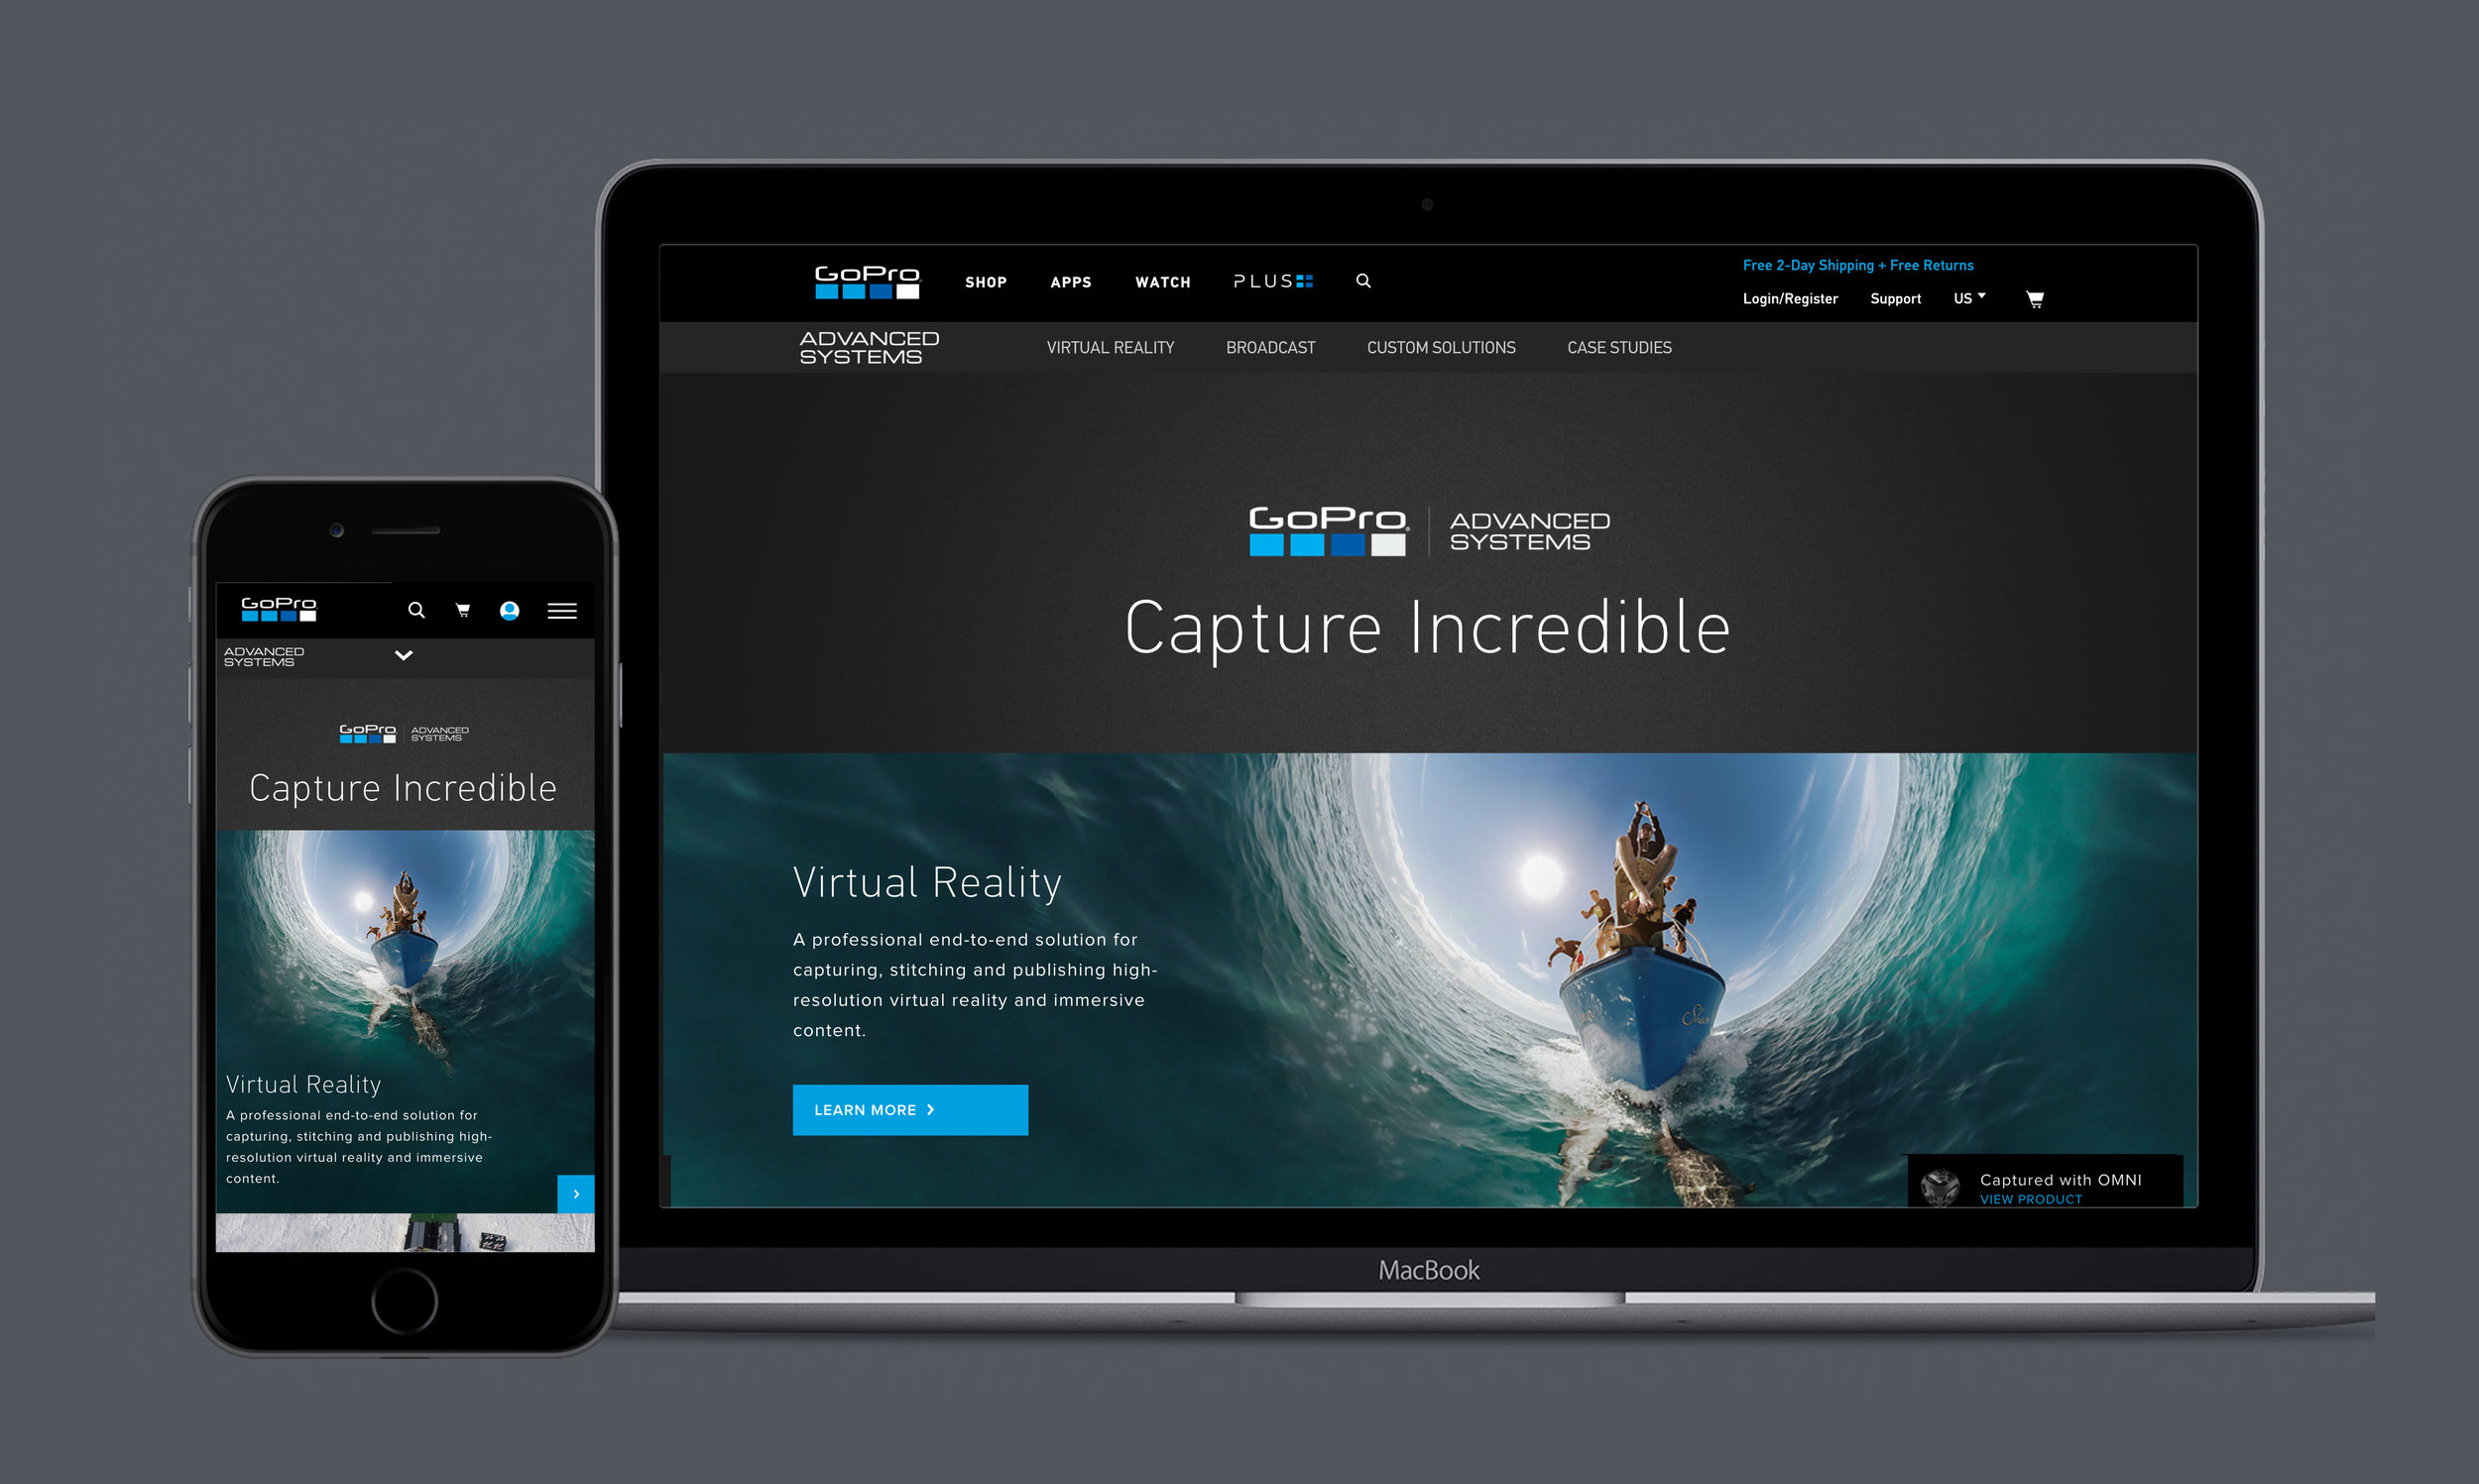 GoPro Advanced System - Telling new product stories for the professional consumer.